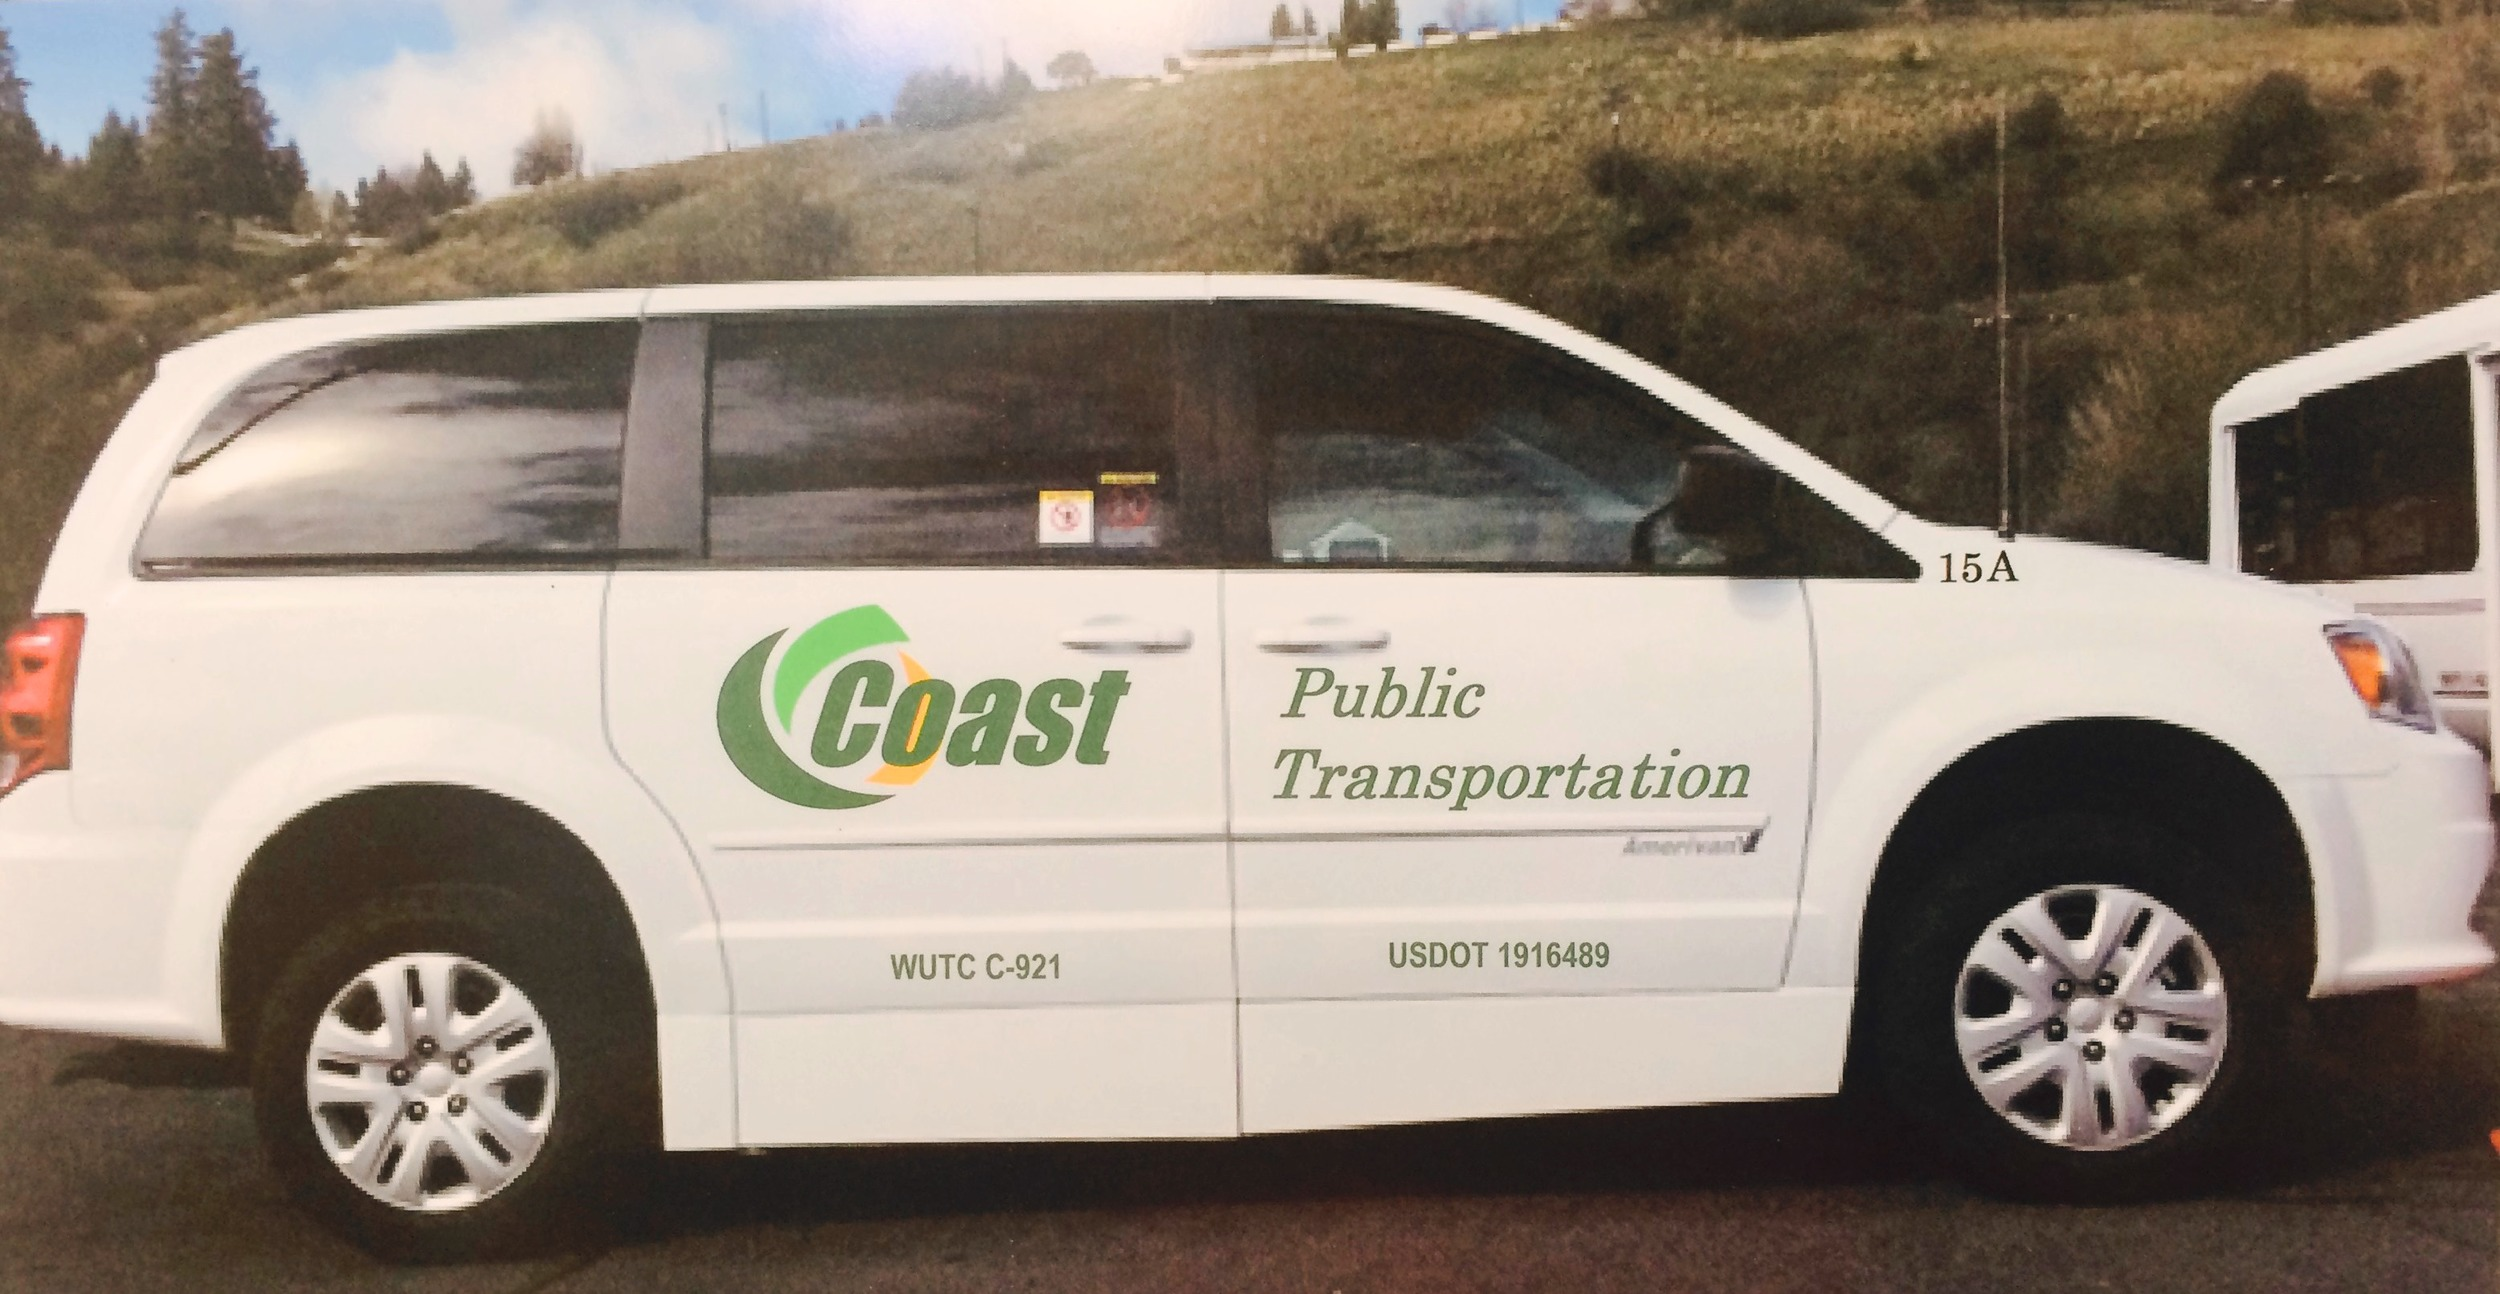 New COAST van purchased by Council on Aging and Human Services through a combination of support from the Washington State Department of Transportation and a grant from EHF's Rural Aging Services Initiative.